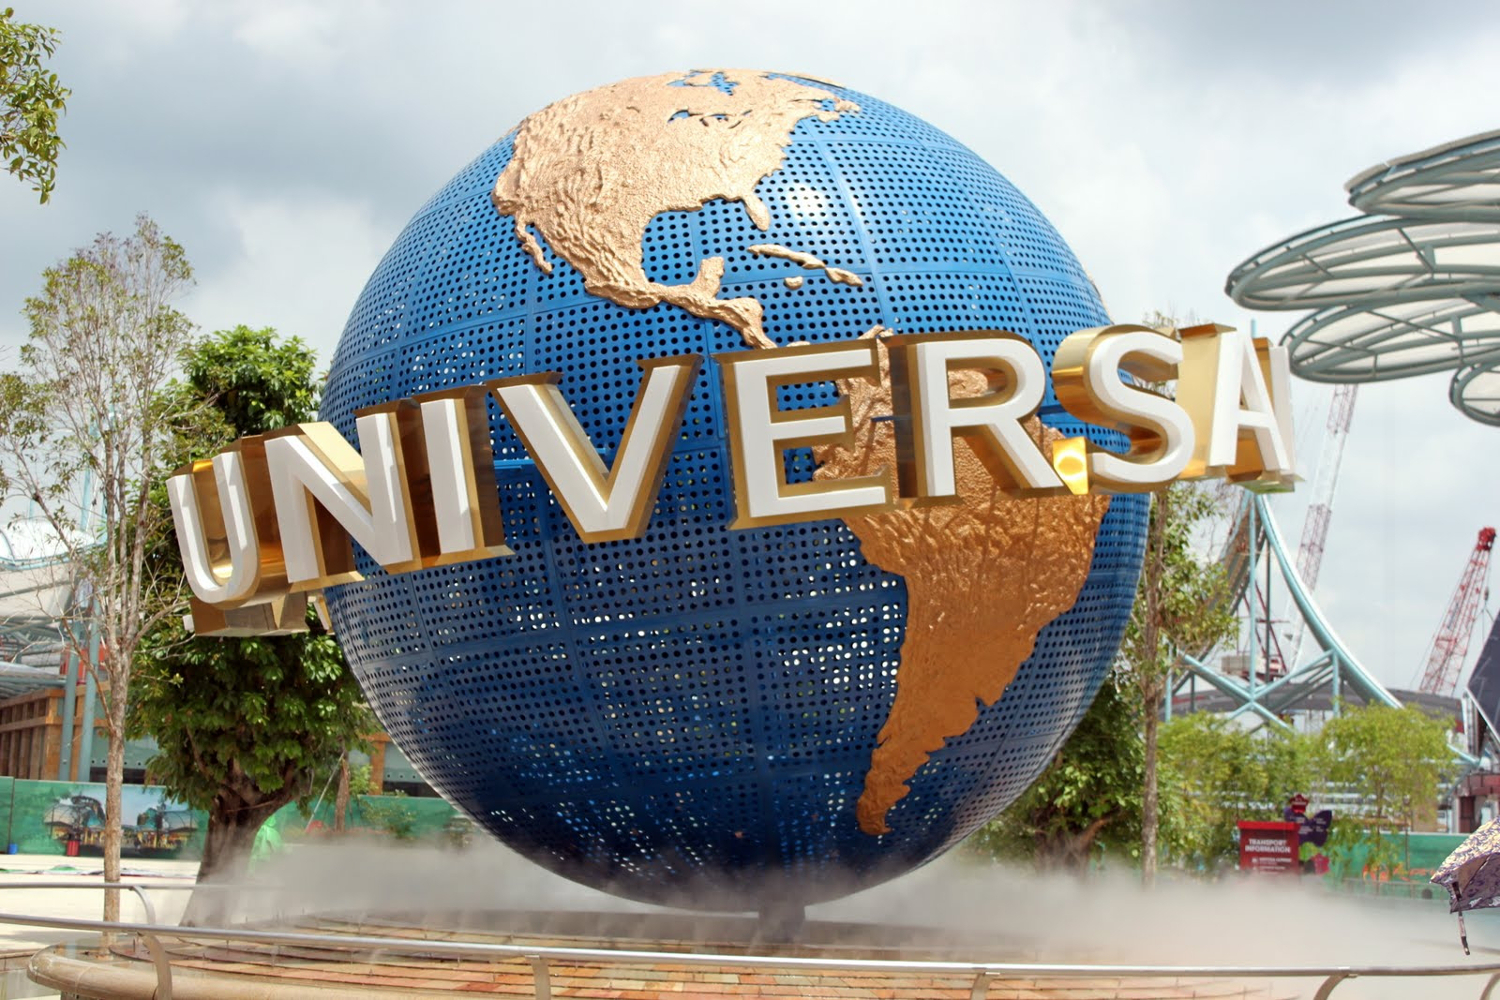 Universal Studio in Singapore - one of the famous tourist attractions in Singapore. Read this insider's guide to Singapore and discover more things to do in Singapore, where to eat in Singapore, and tips for Singapore. #Singapore #singaporeguide #singaporetraveling #singaporetravel #asiatravel #singaporetravelguide #travelguide #singaporetips